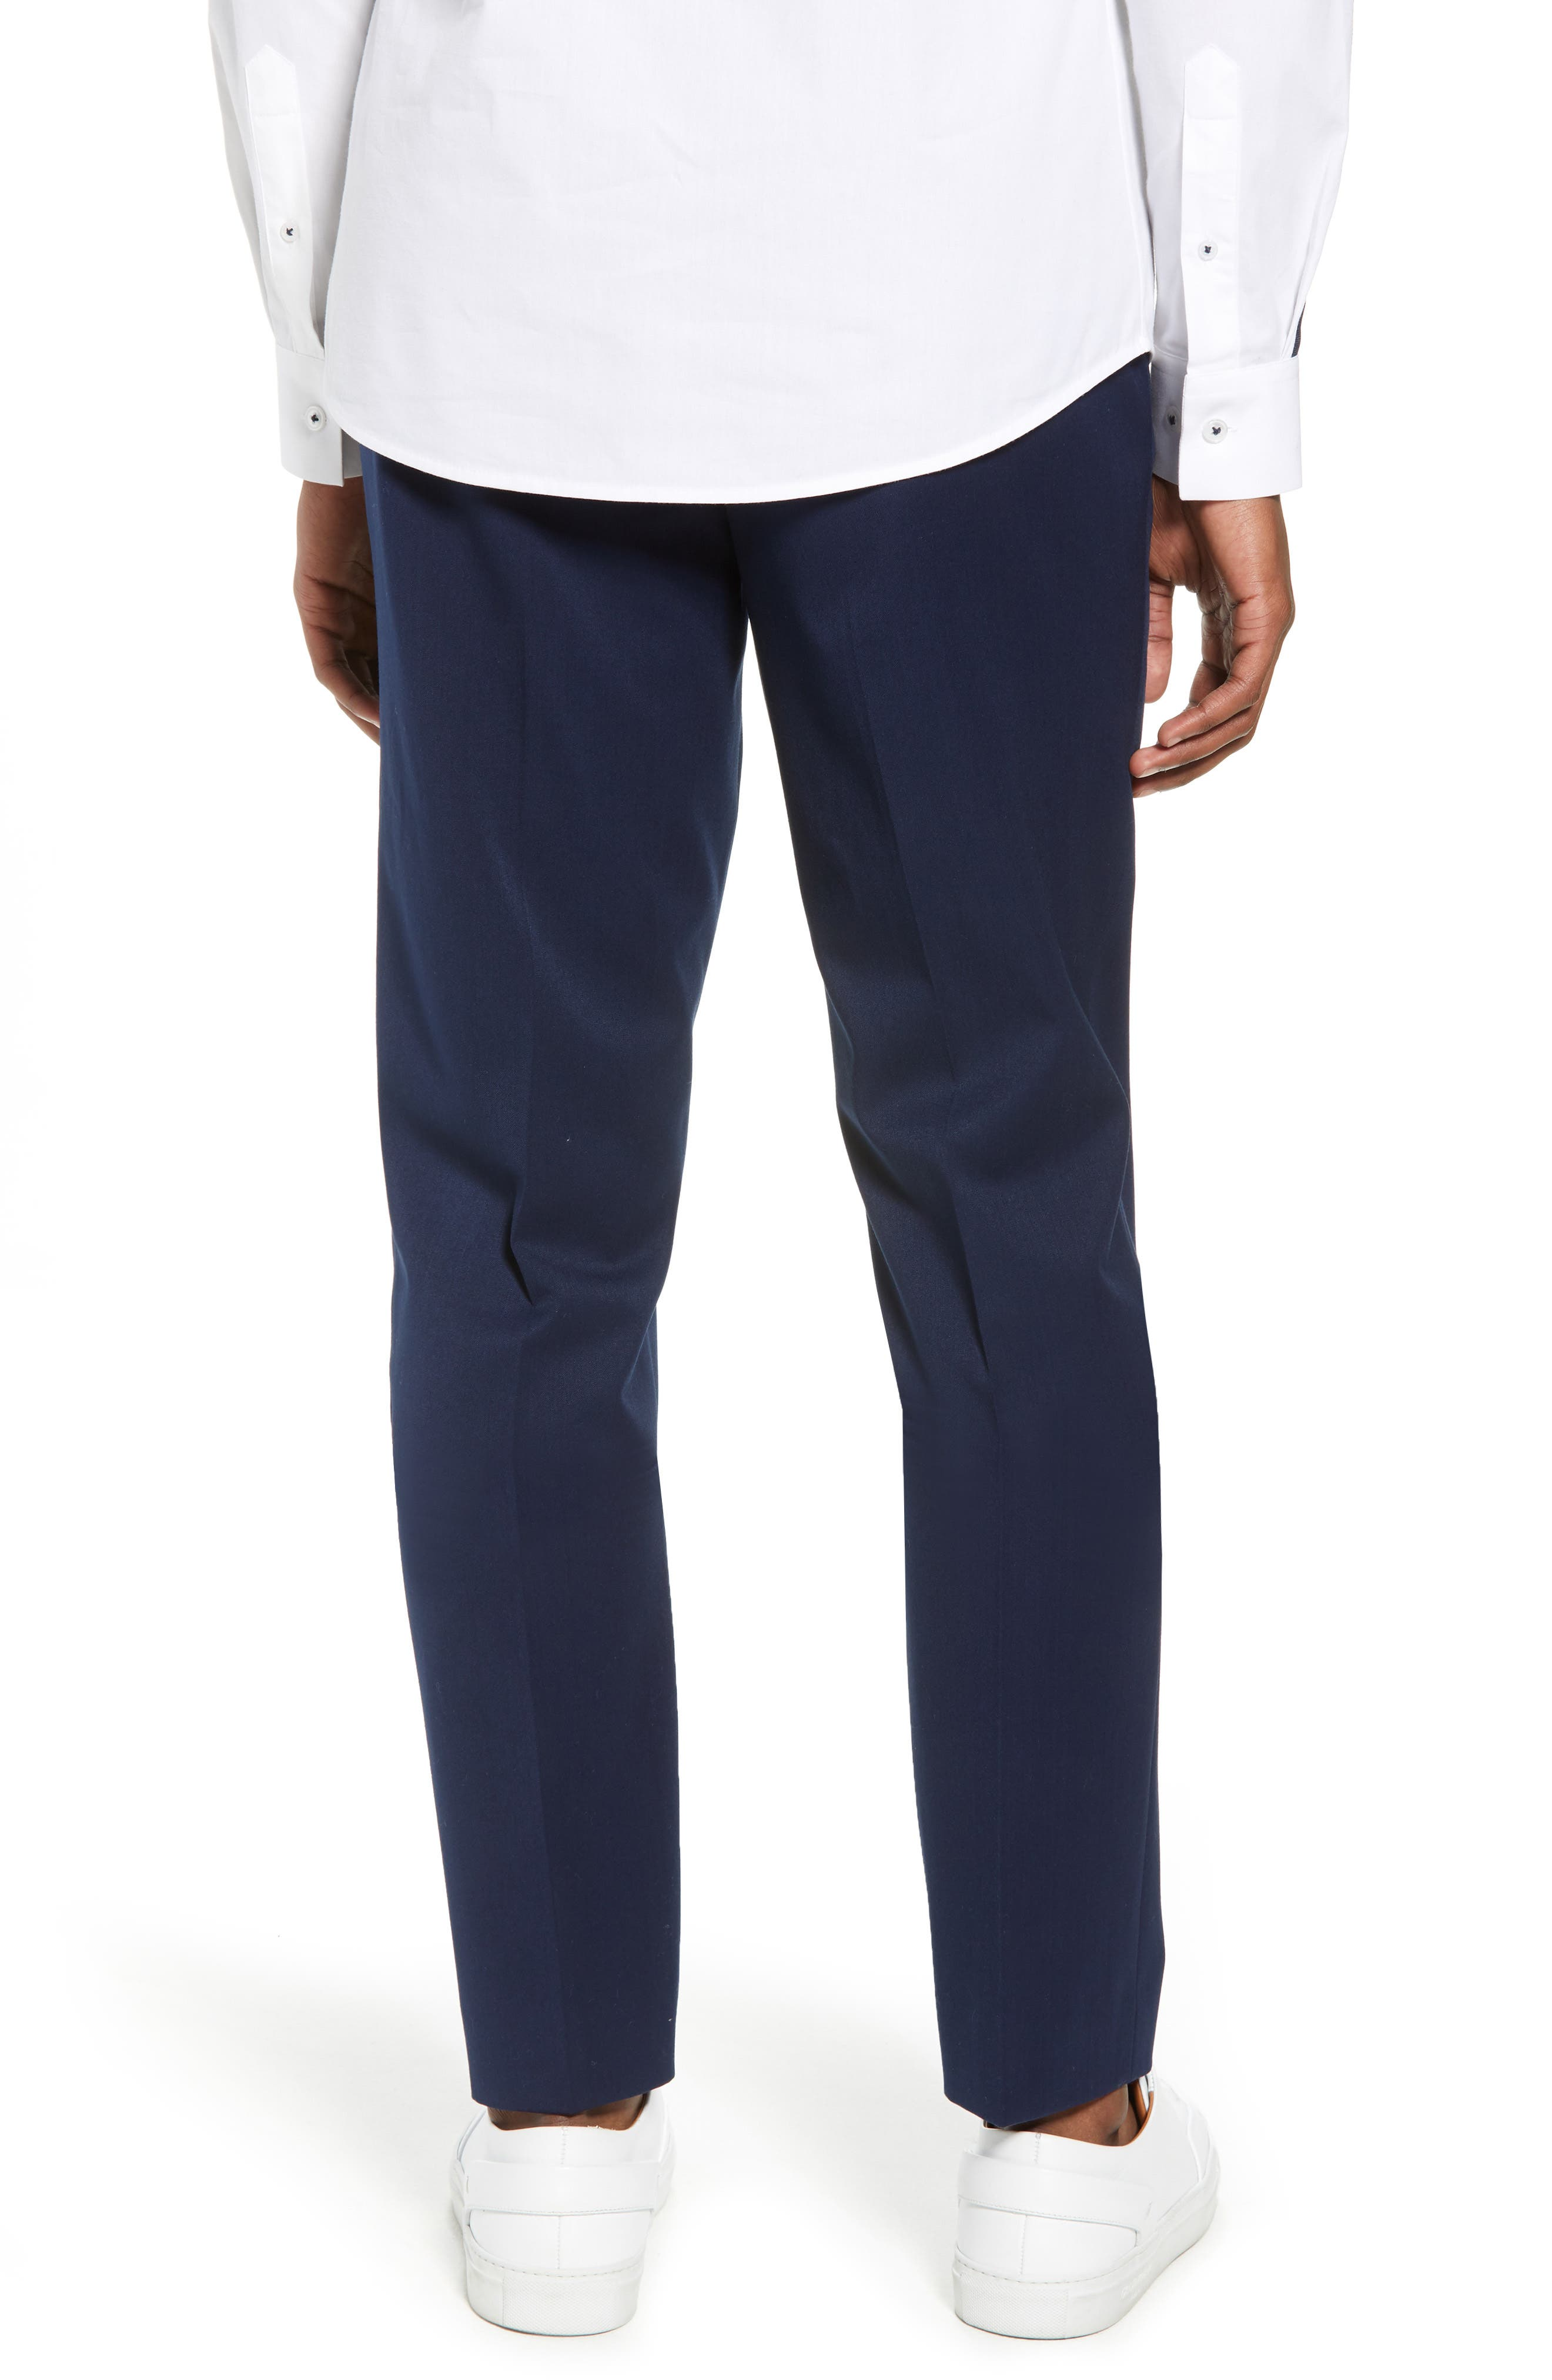 Muscle Fit Trousers,                             Alternate thumbnail 2, color,                             NAVY BLUE